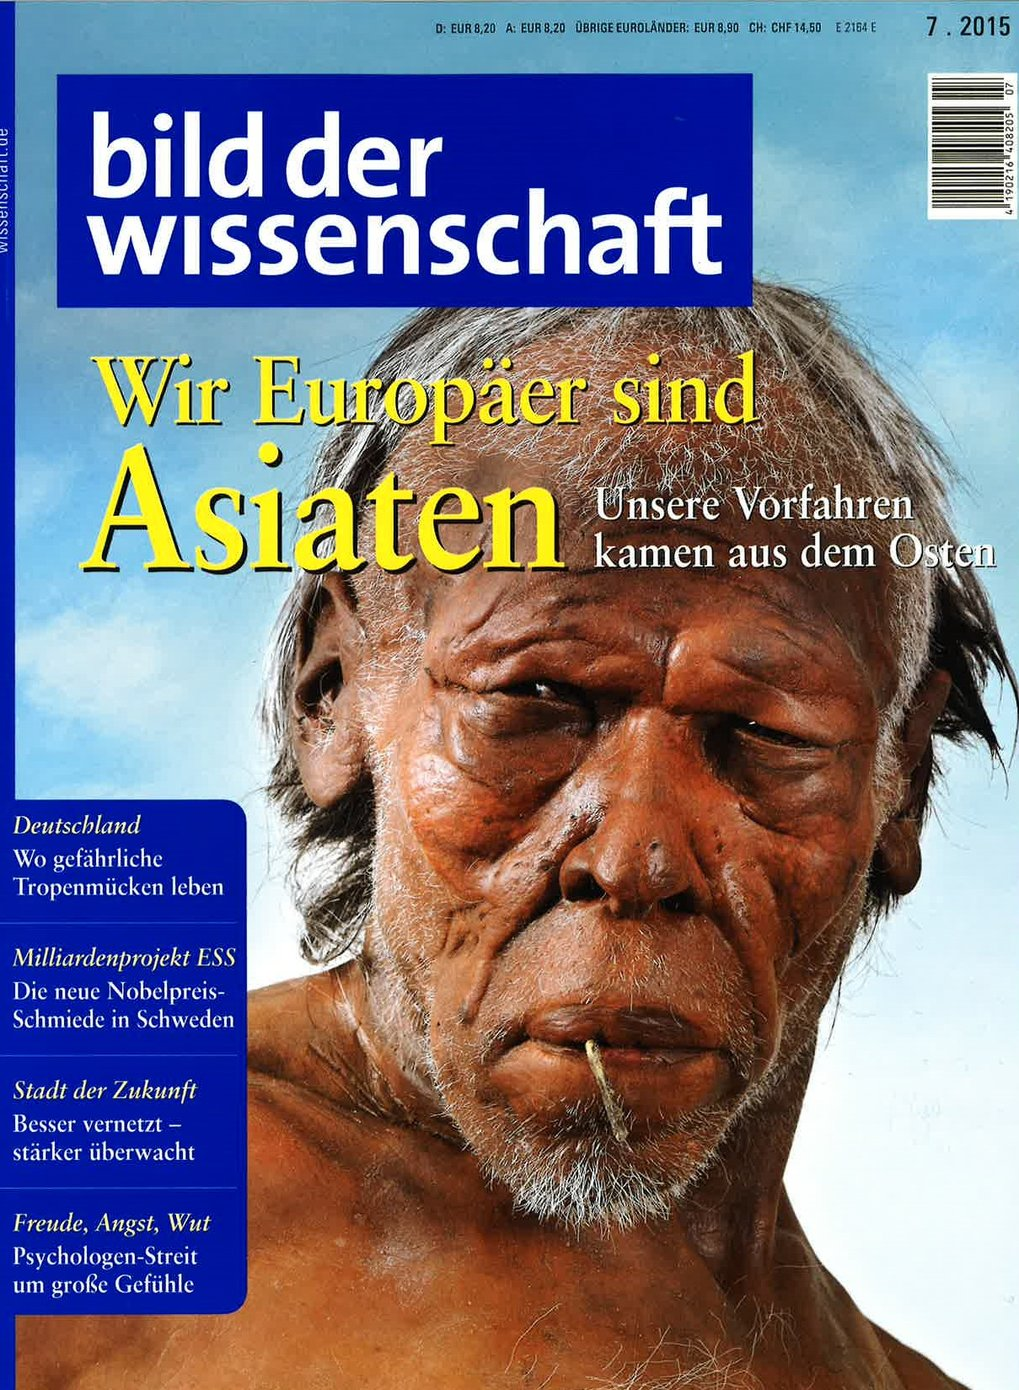 Article about the latest findings of Wolfgang Haak and Johannes Krause, Dept. of Archaeogenetics, among others, on the genetic makeup of Europeans (in German).Bild der Wissenschaft, No. 7/2015